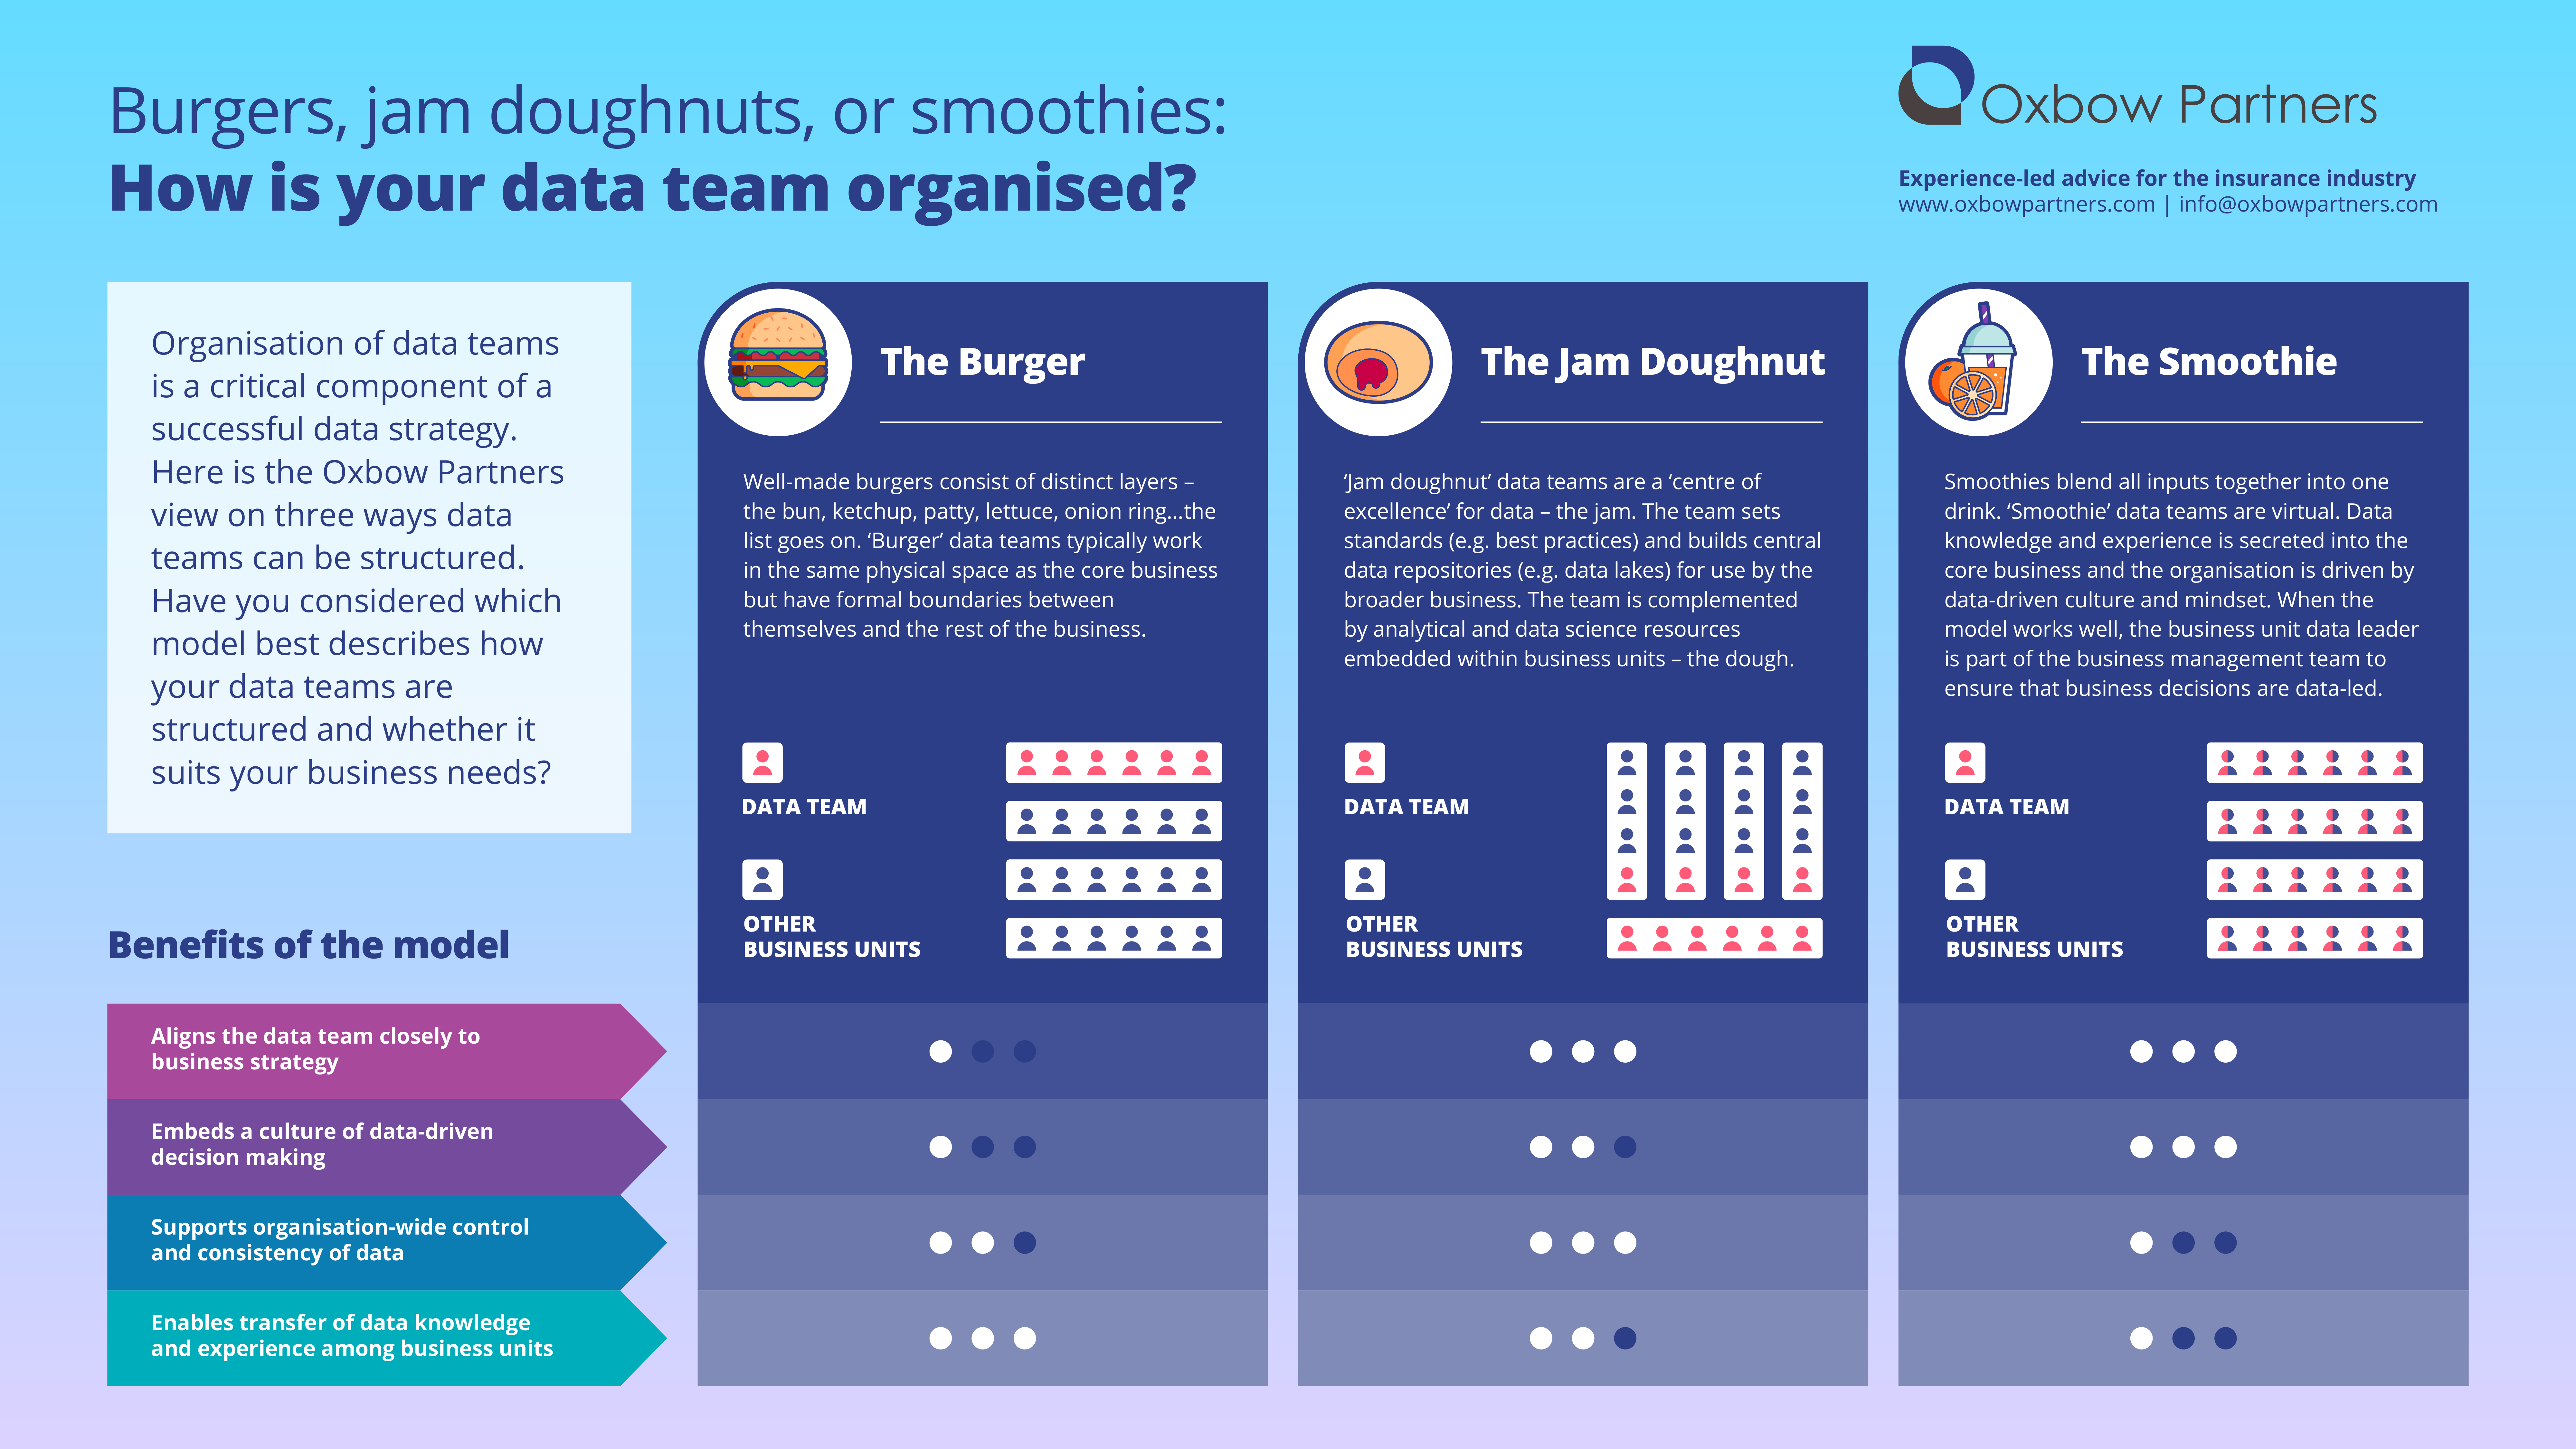 Structuring Data Teams: infographic summarising the three ways in which data teams can be organised. We have described these as the Burger, the Jam Doughnut, and the Smoothie. There is no correlation between the healthiness of the food and the desirability of the model for insurance companies.